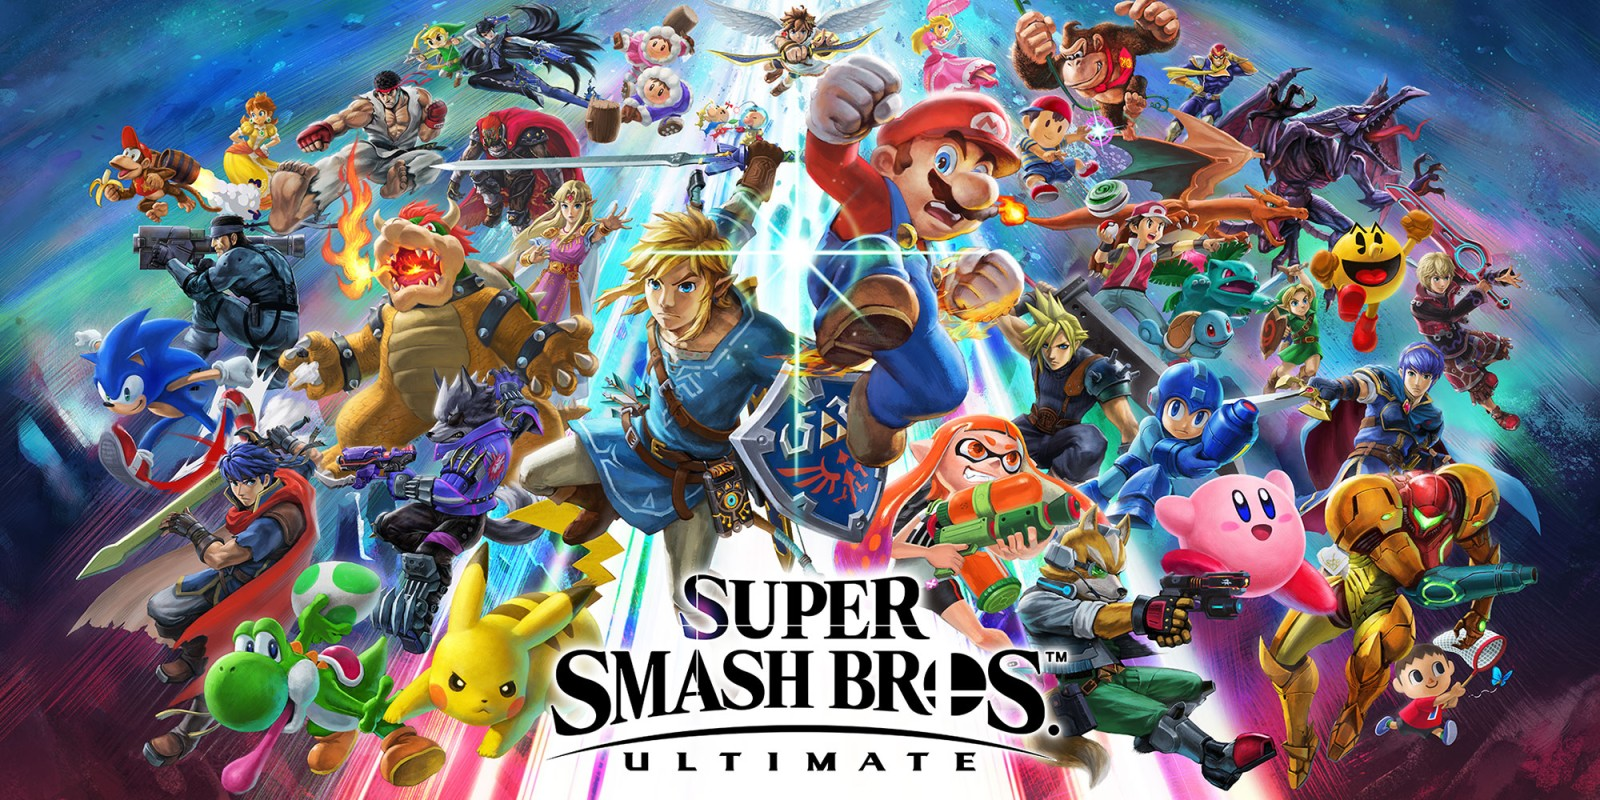 image of all super smash bros characters